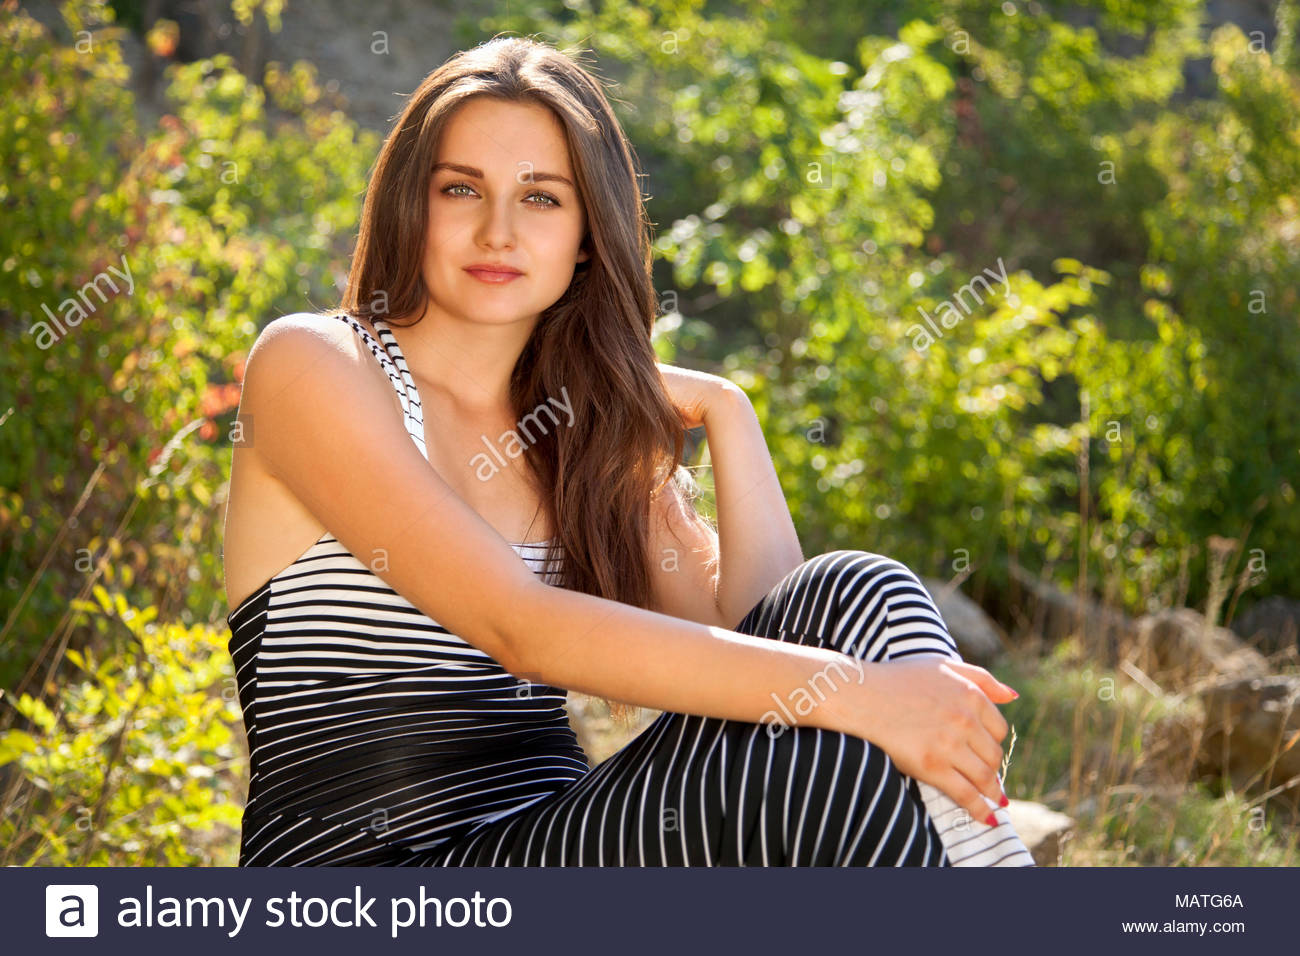 Young woman brunette, 20 years old, in front of blur green nature background looking at the camera. Shines the bright sun. - Stock Image